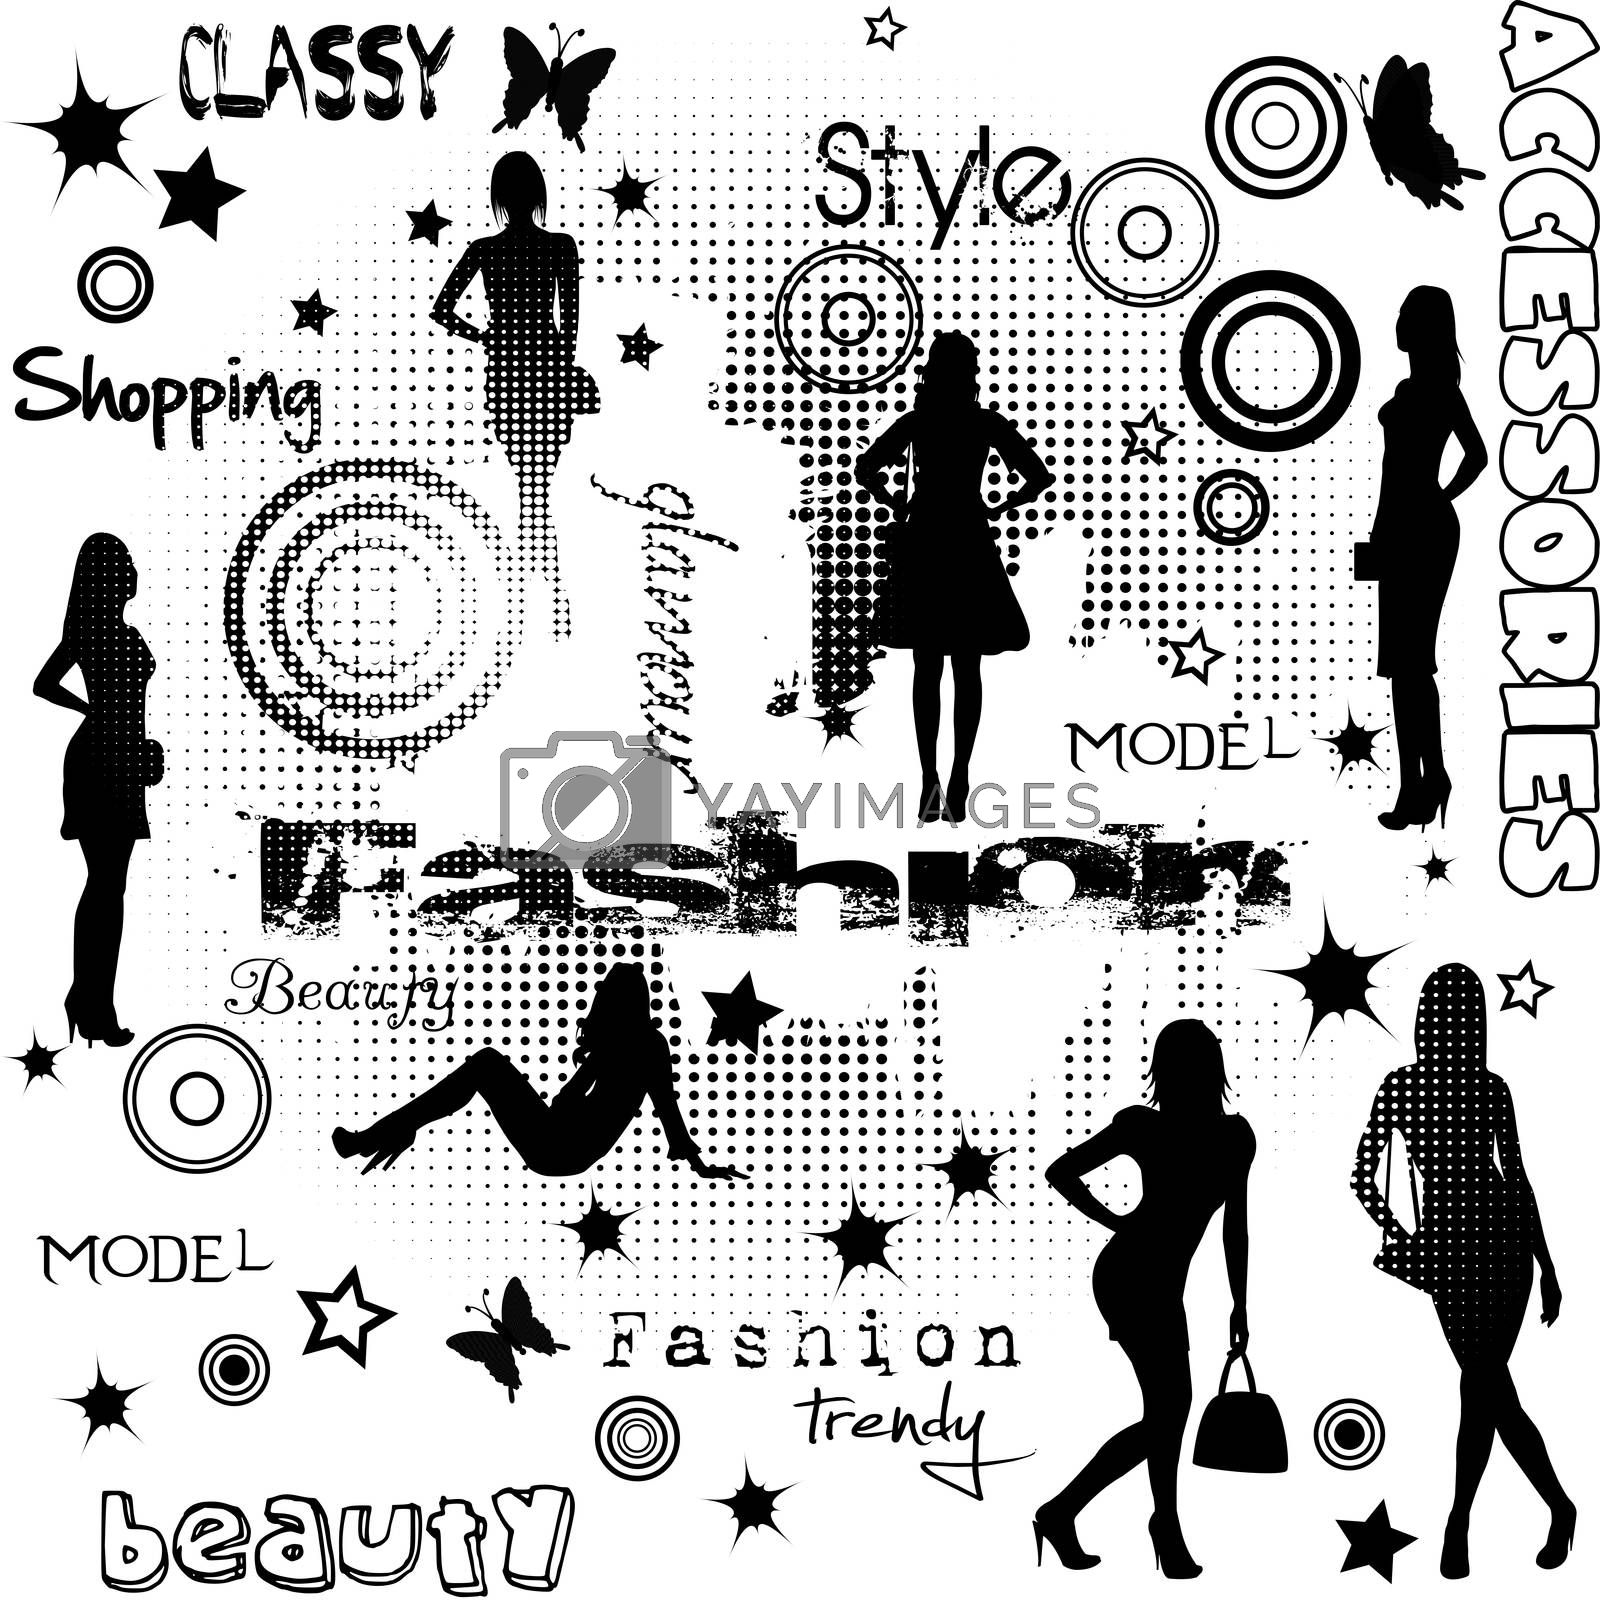 Fashion advertisement with women silhouettes